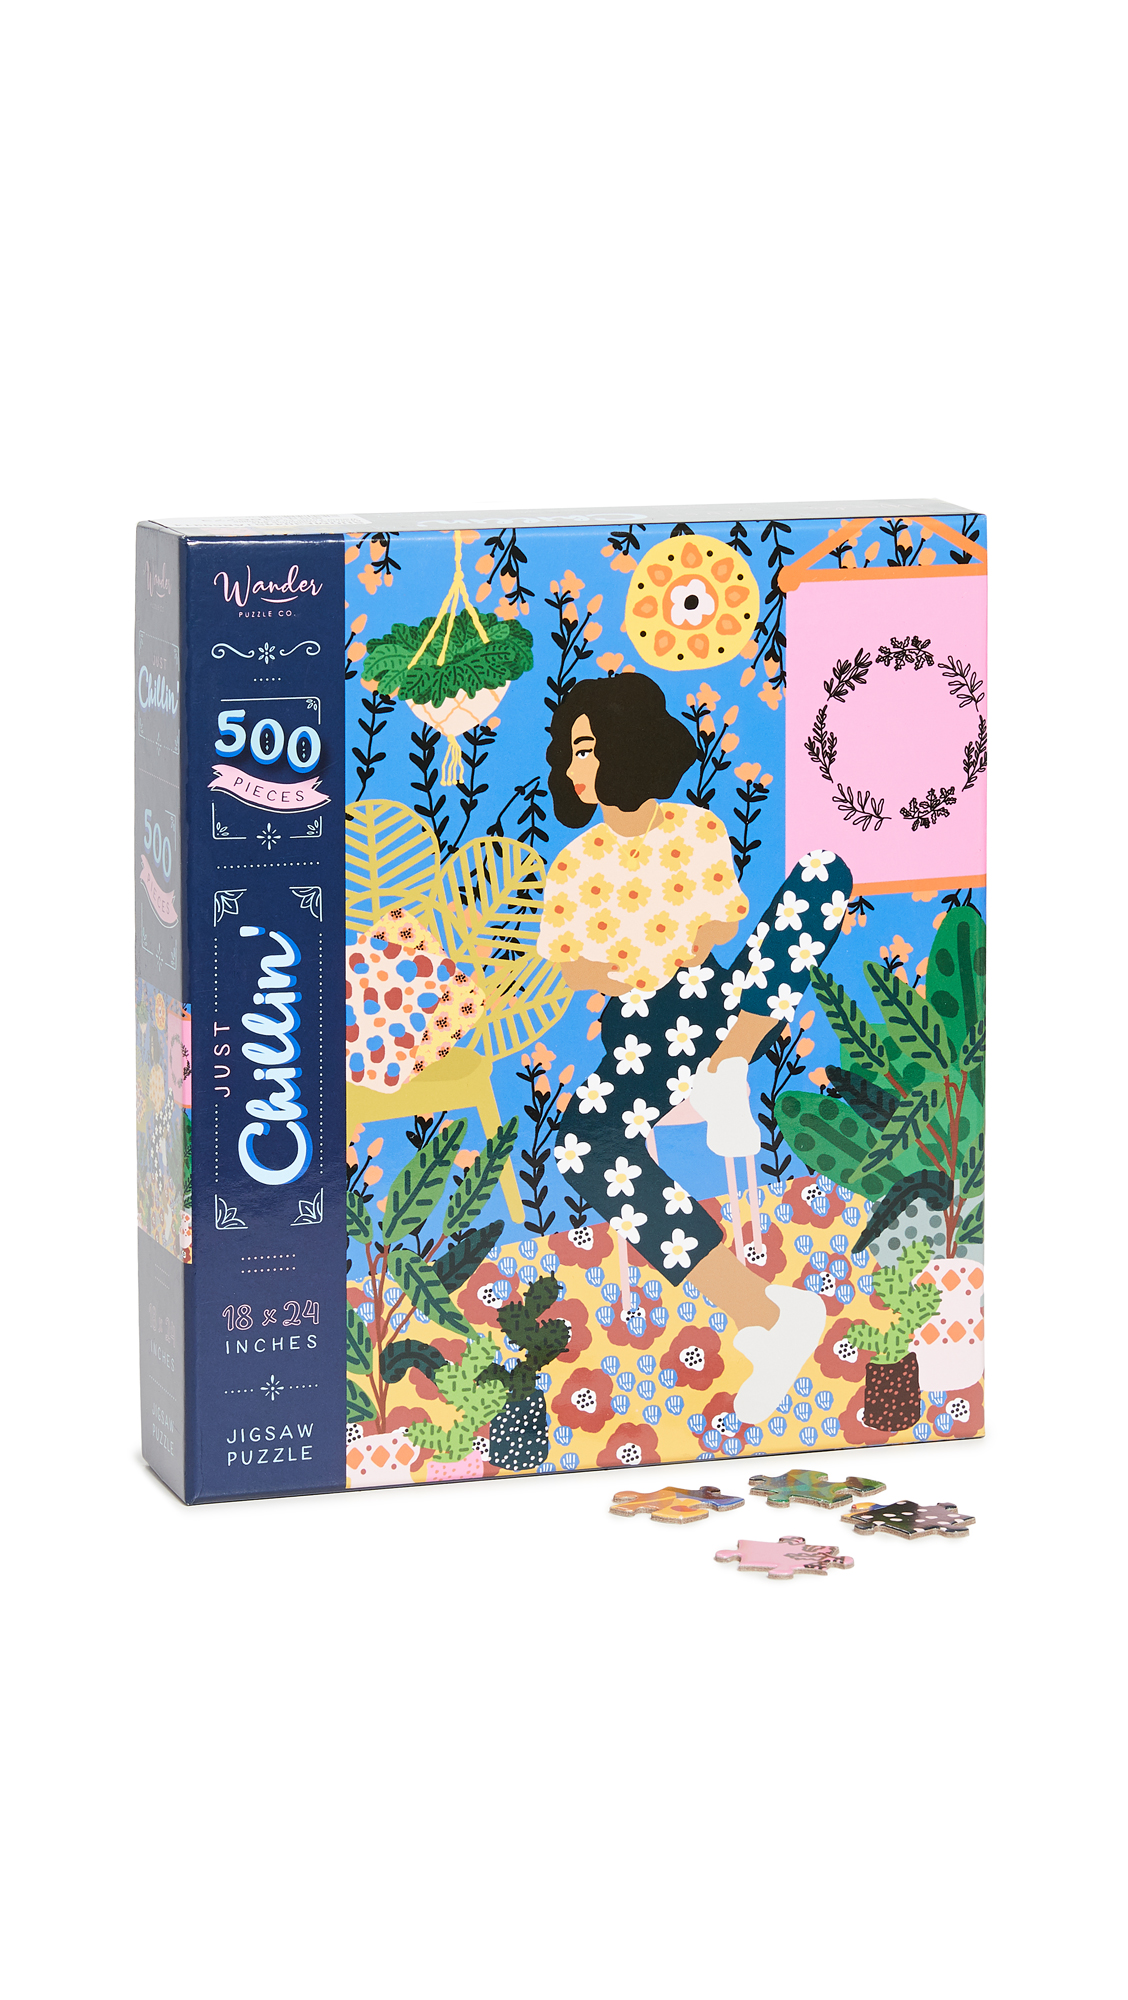 Shopbop @Home Wander Puzzle Co. Just Chillin' Puzzle